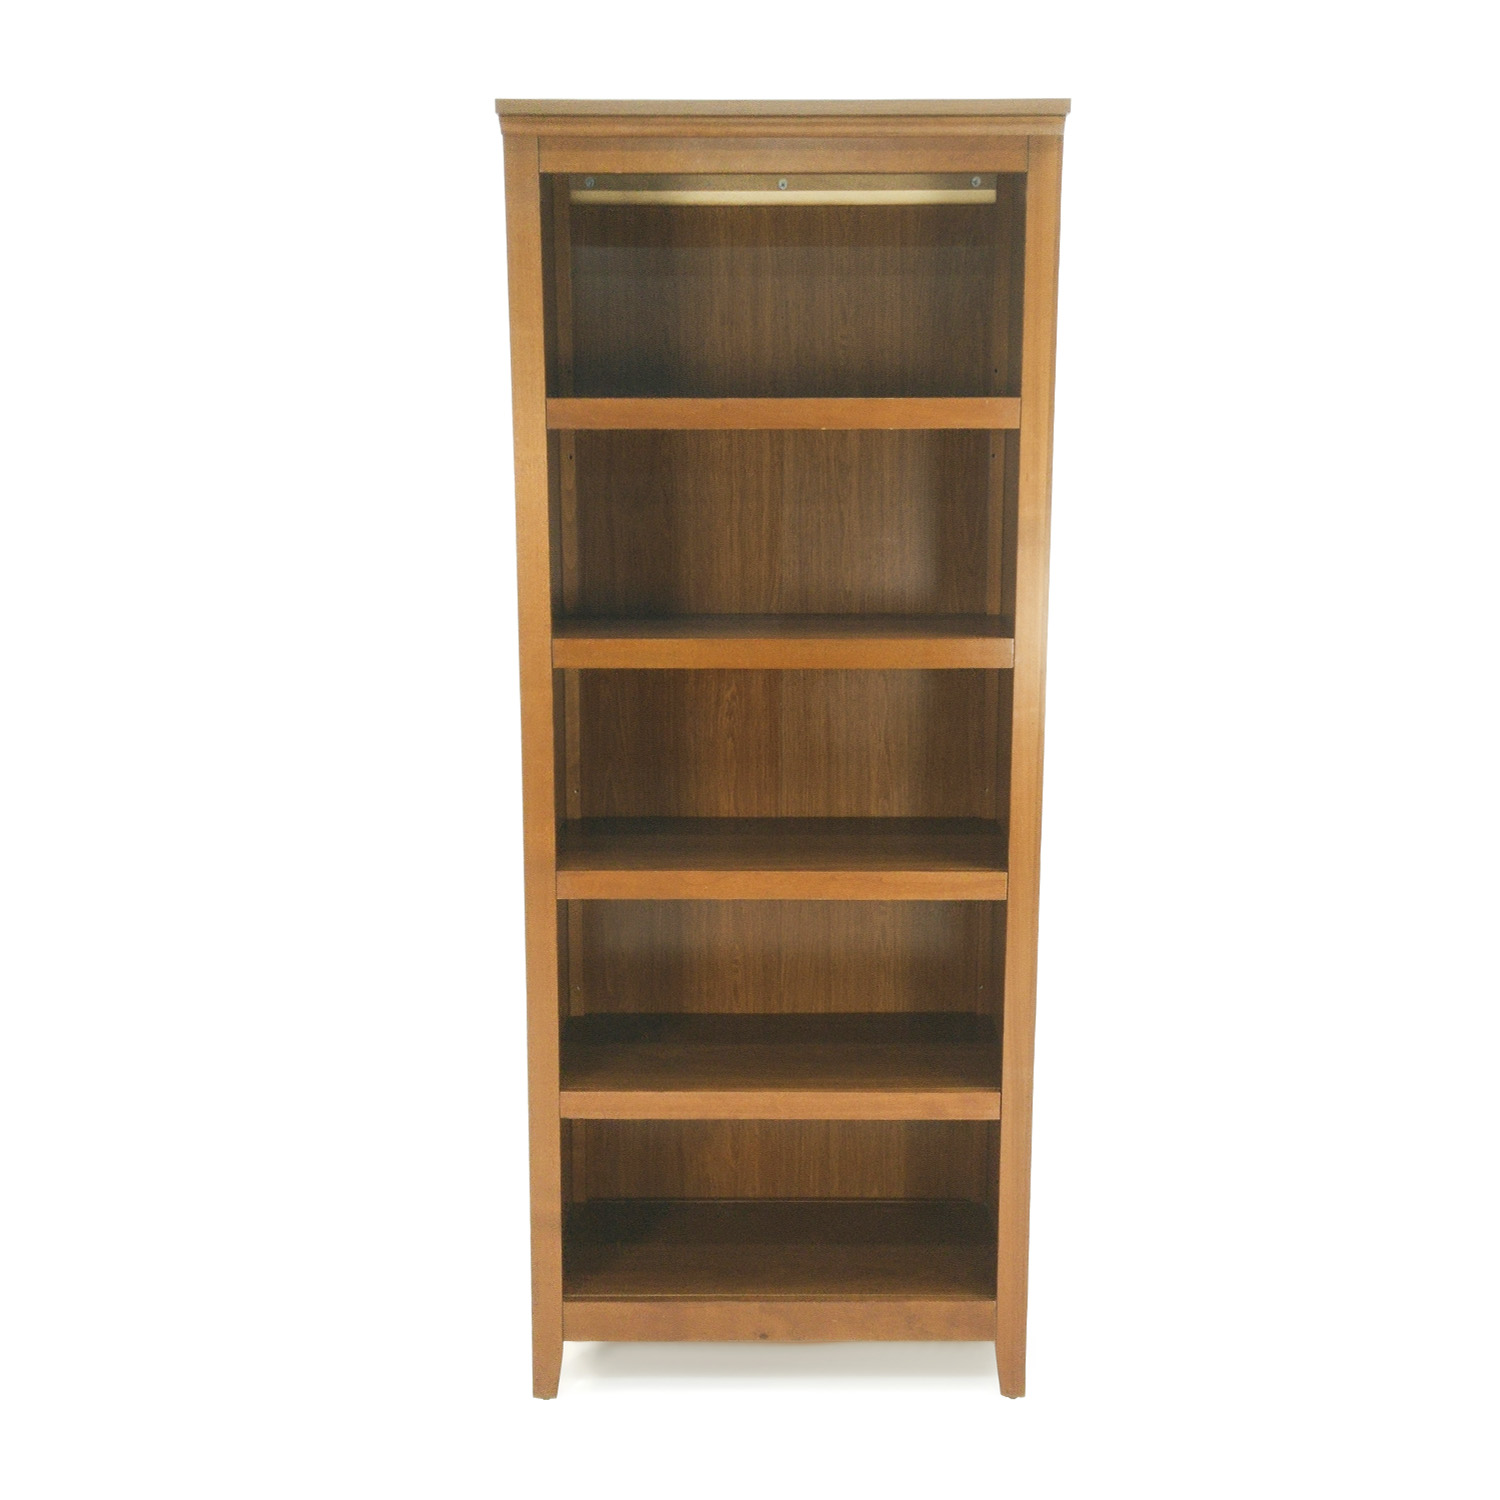 47% OFF - Brennon Brennon Five-Shelf Rustic Wood Bookshelves / Storage